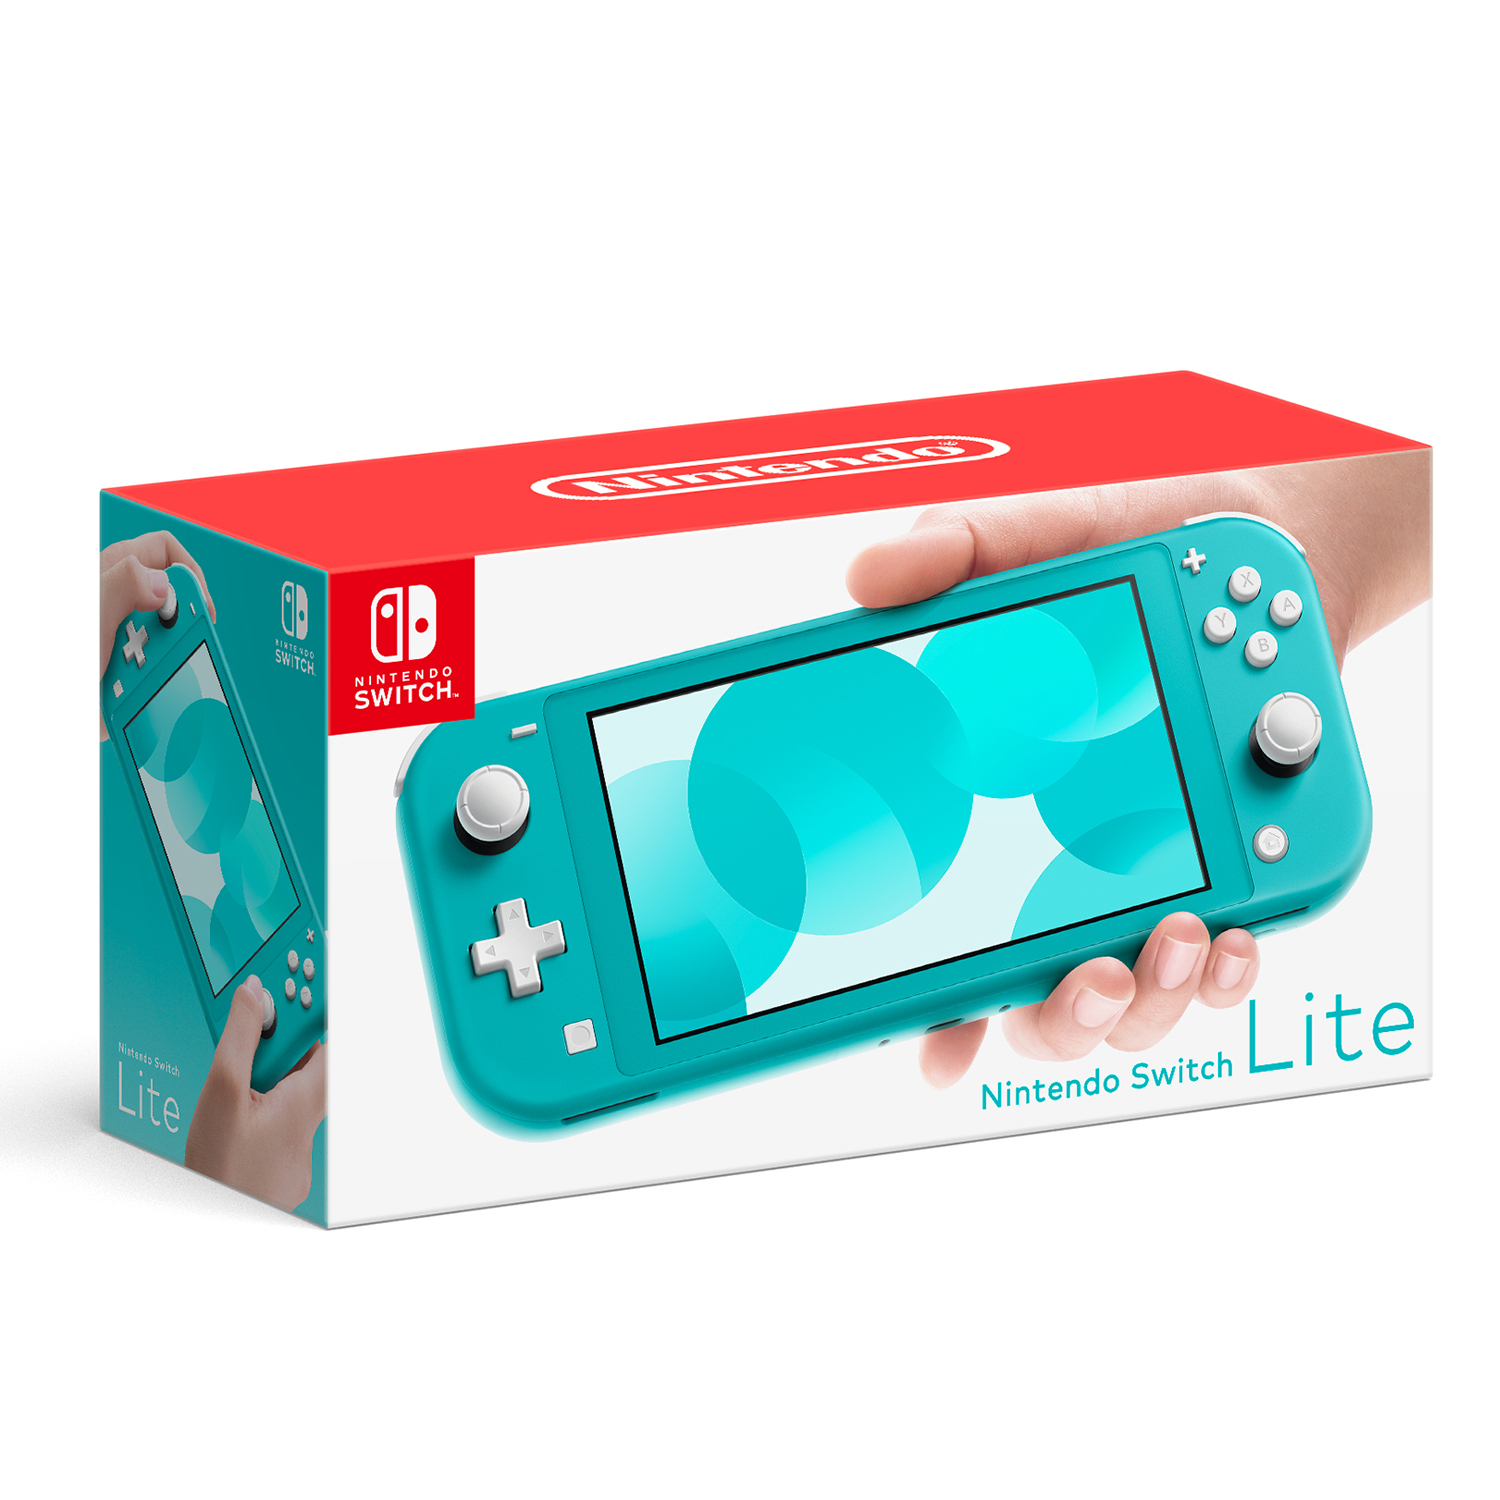 miniature 16 - Nintendo Switch Lite Console Bundle with Extra Warranty Protection